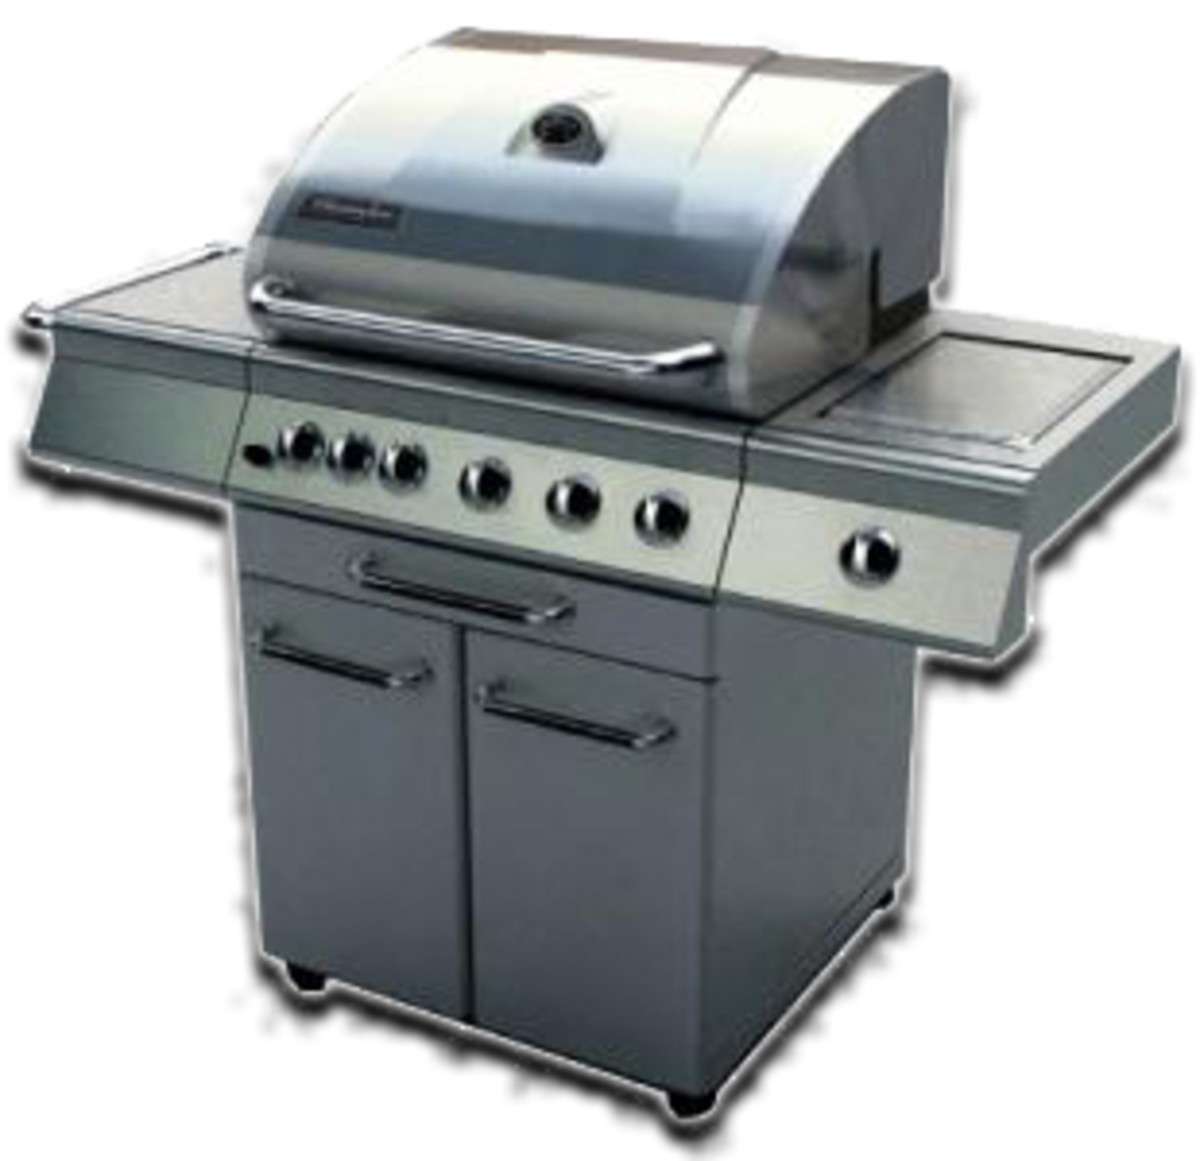 Charmglow Gas Barbeque Grills: Three Decades of Barbecuing